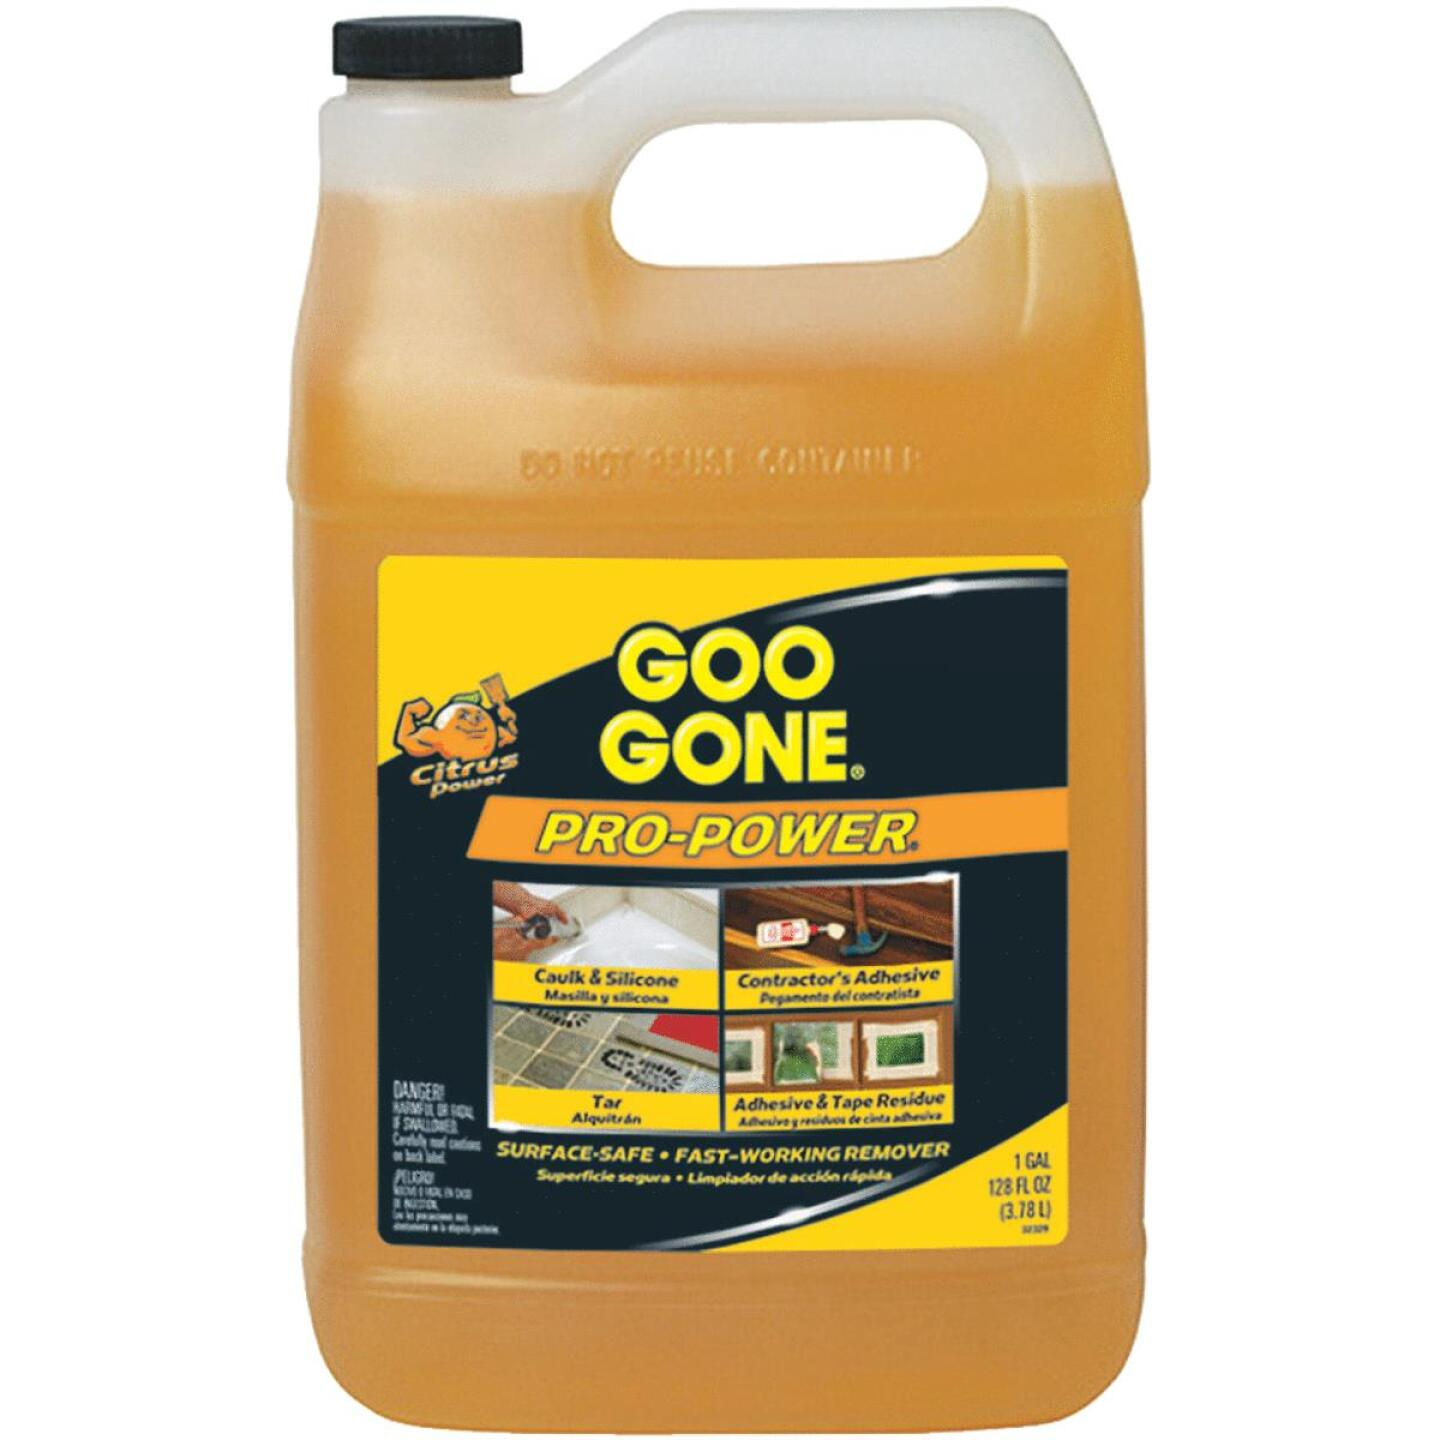 Goo Gone 1 Gal. Pro-Power Adhesive Remover Image 4